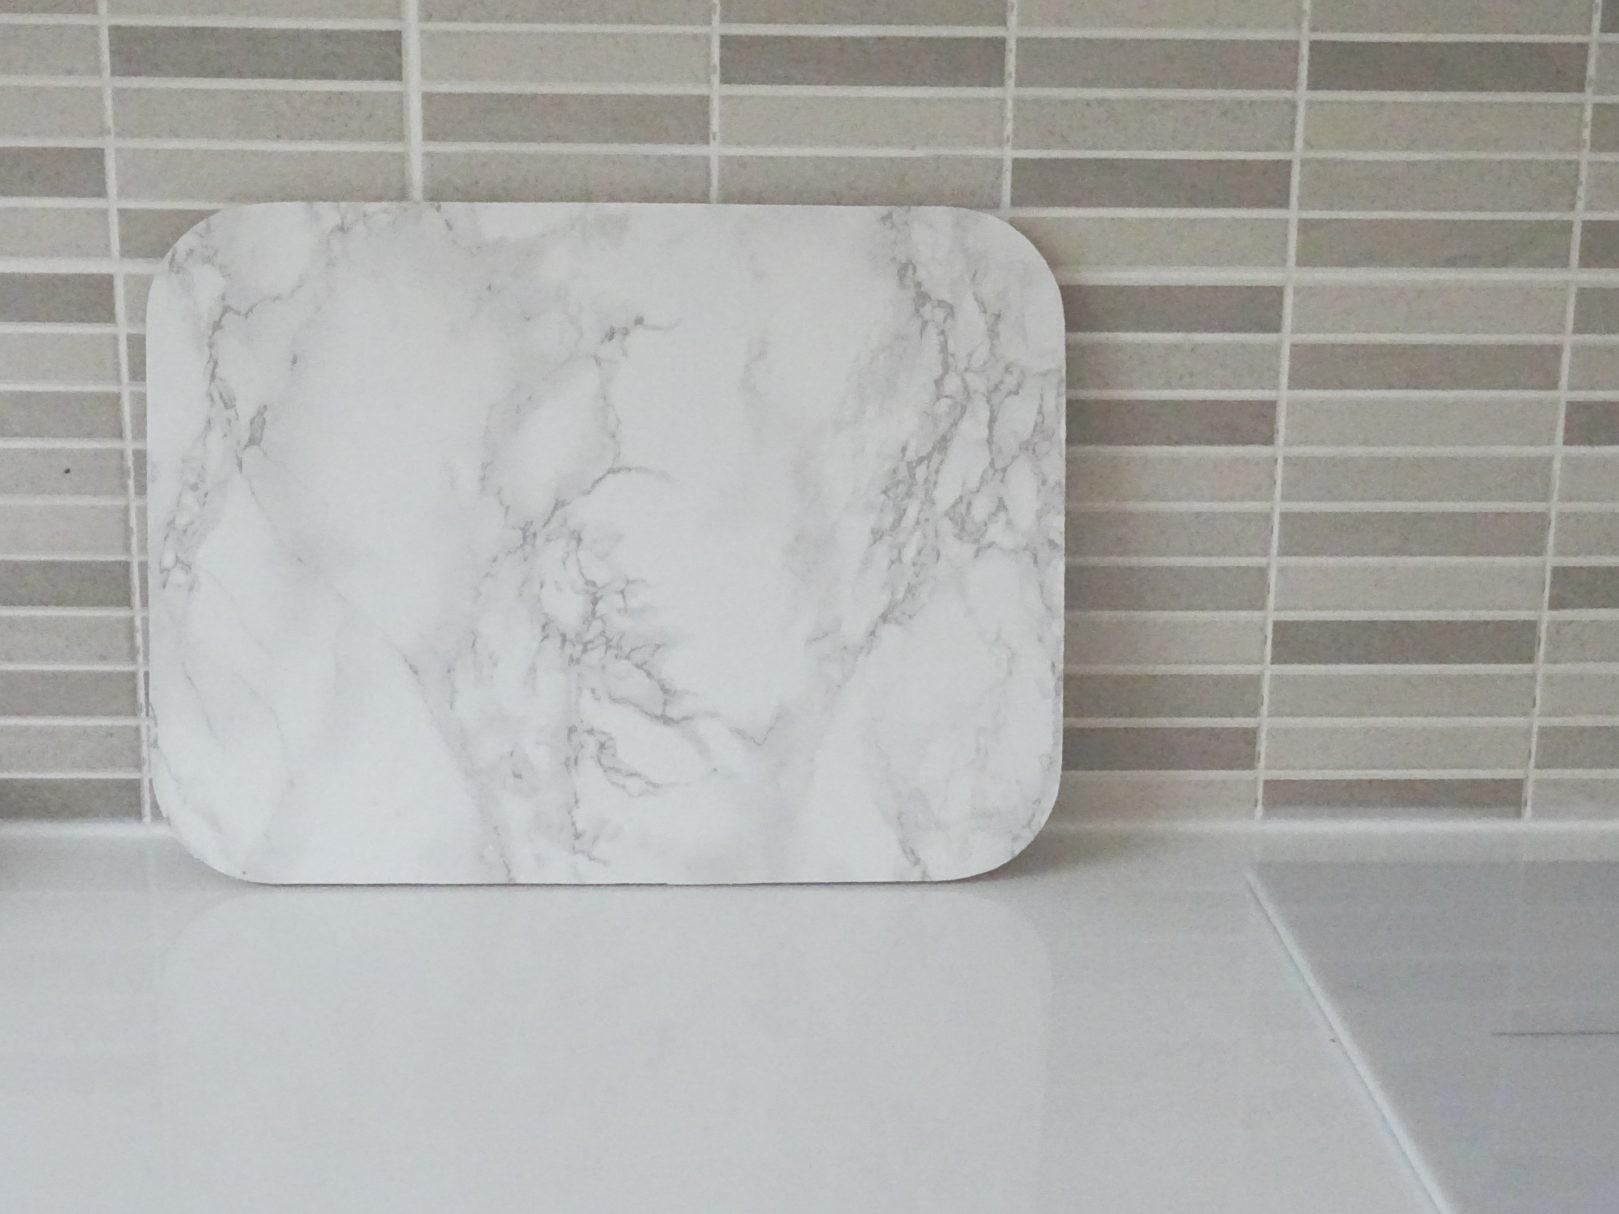 Mini Diy Project Using Marble Contact Paper Aaltonen